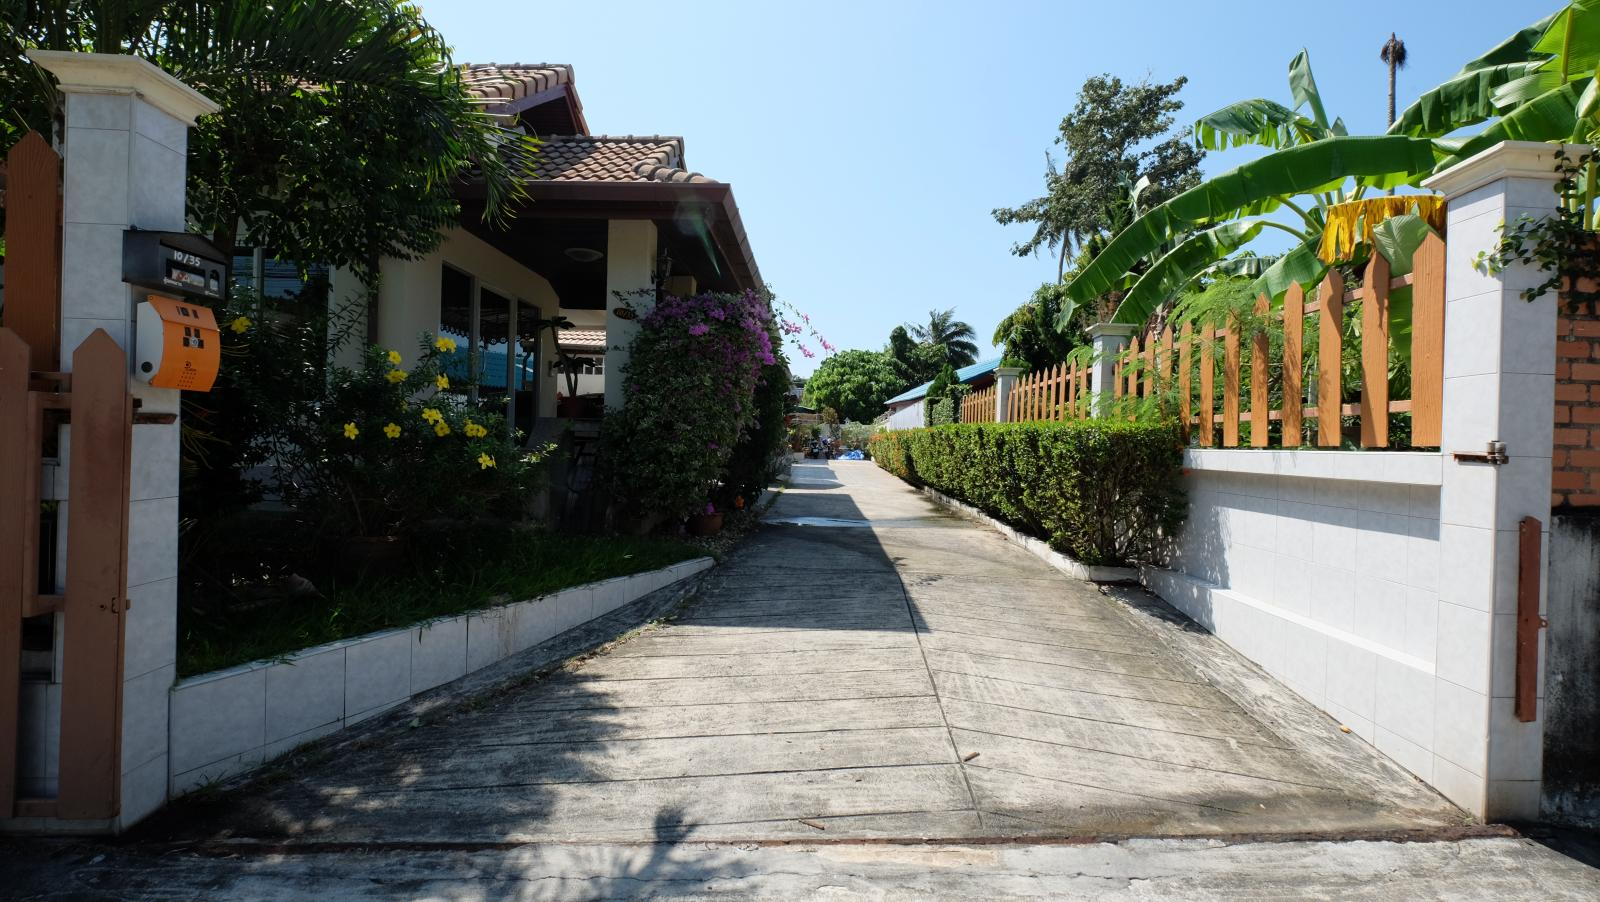 Pool Villa For Sale In Rawai, Phuket, Thailand For Only 5